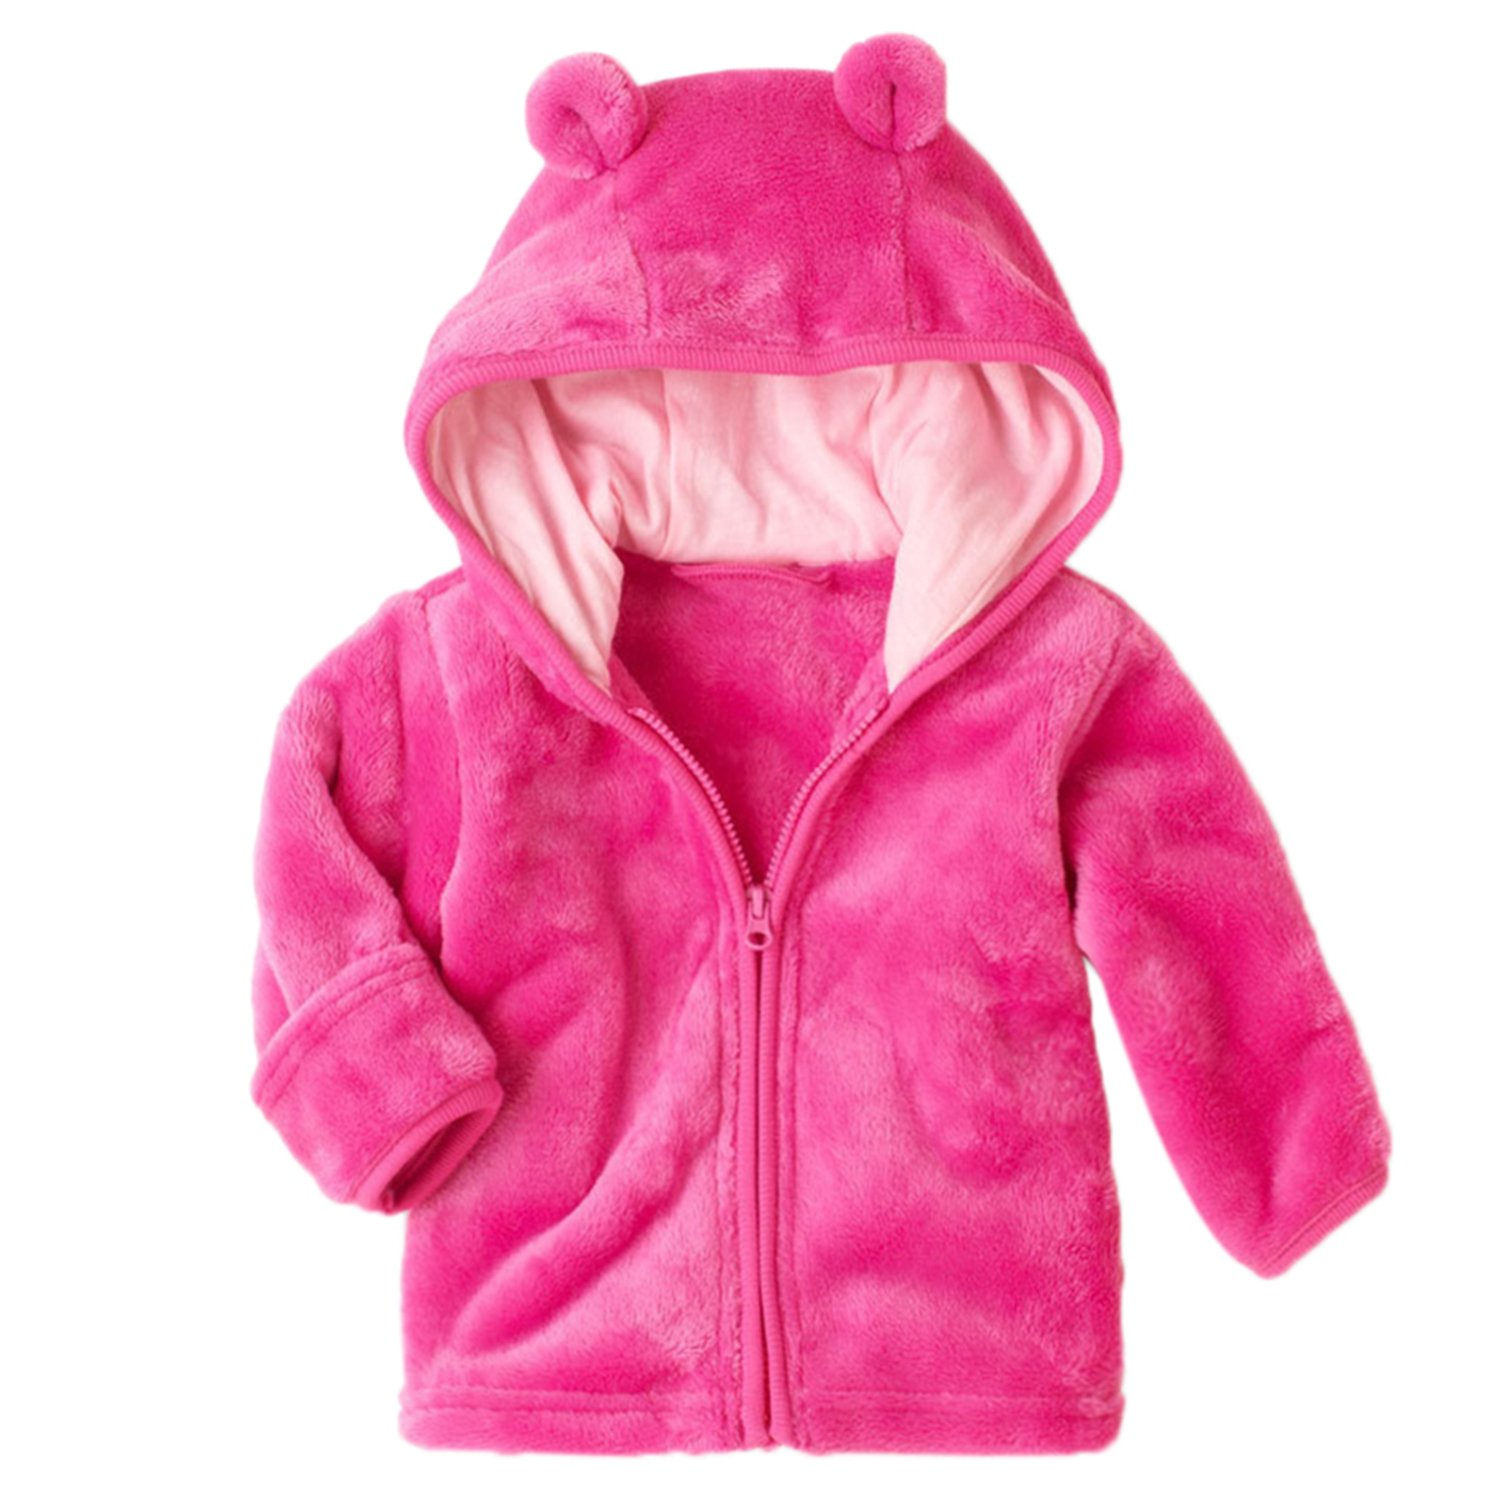 XWDA Baby Boys Girls' Micro Fleece Jacket with Lined Hoodies Kids Warm Solid Zipper Up Coat 20177443